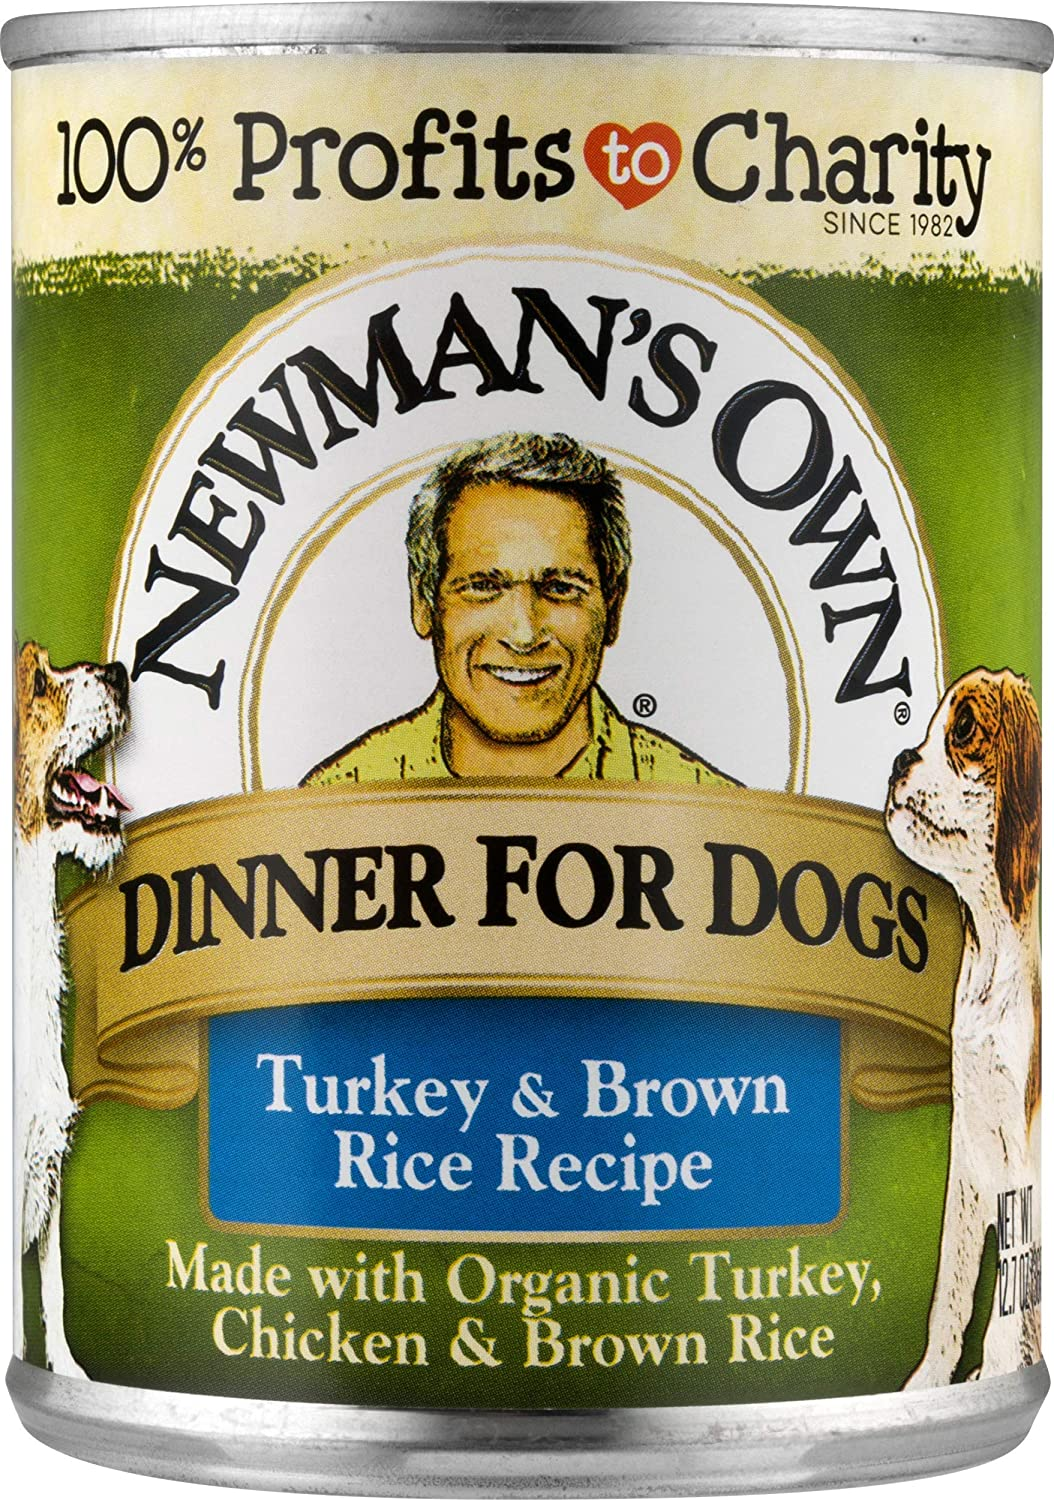 Newman's Own Turkey & Brown Rice Dinner For Dogs, 12.7-oz. (Pack of 12)